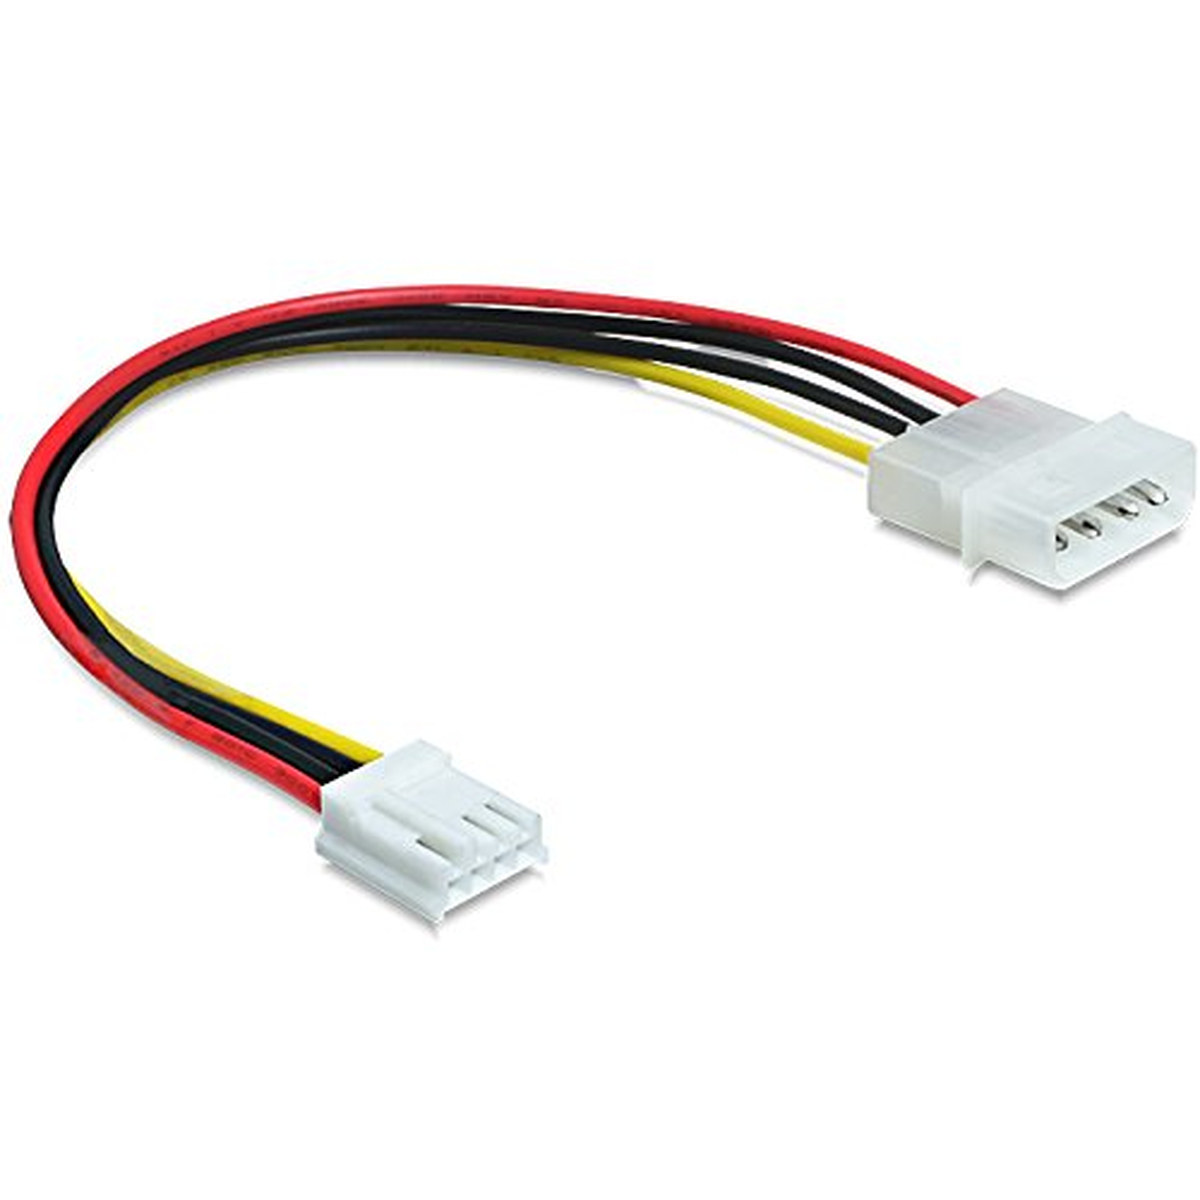 DeLOCK Adapter M.2 NGFF > PCI Express x4